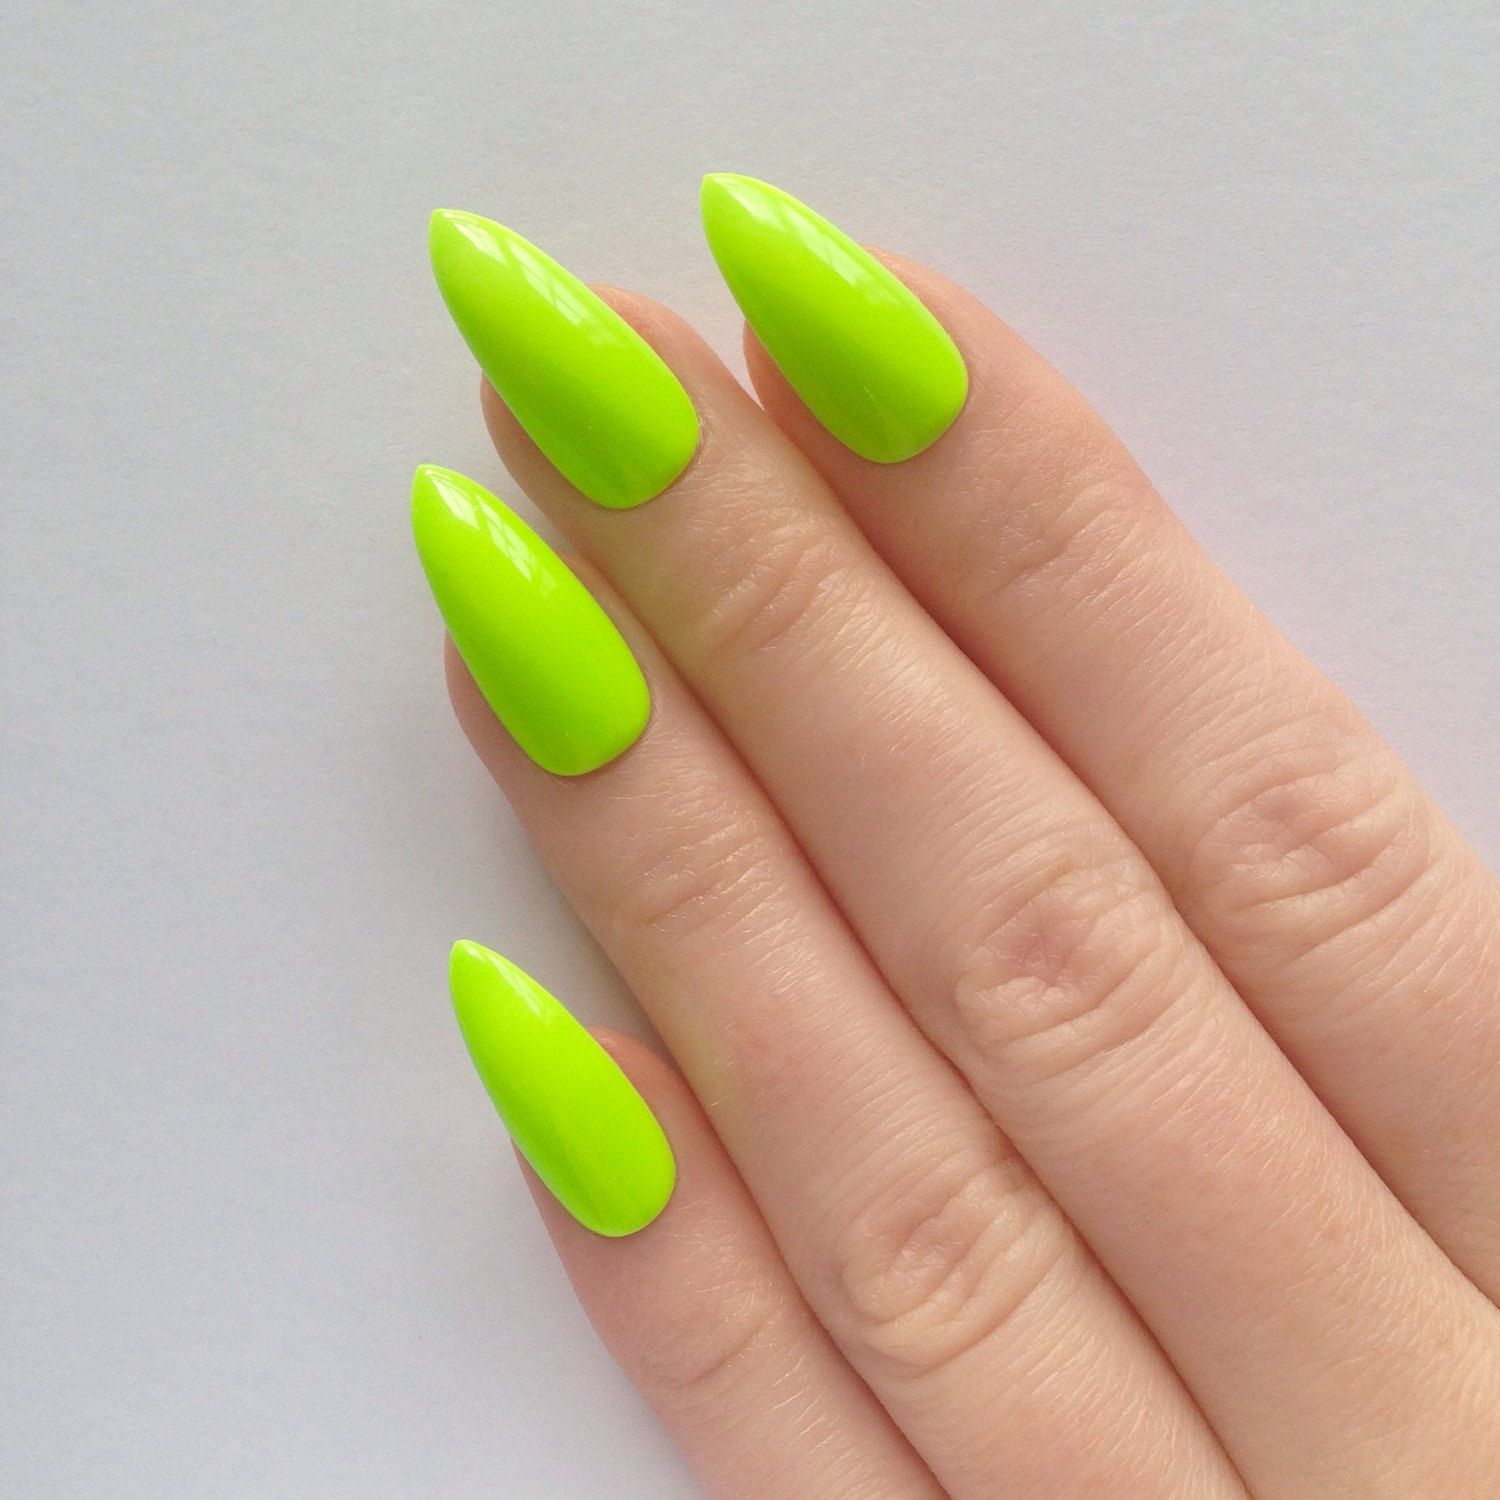 etsy Neon Green Stiletto nails, Fake nails, Stiletto nails, Press on ...